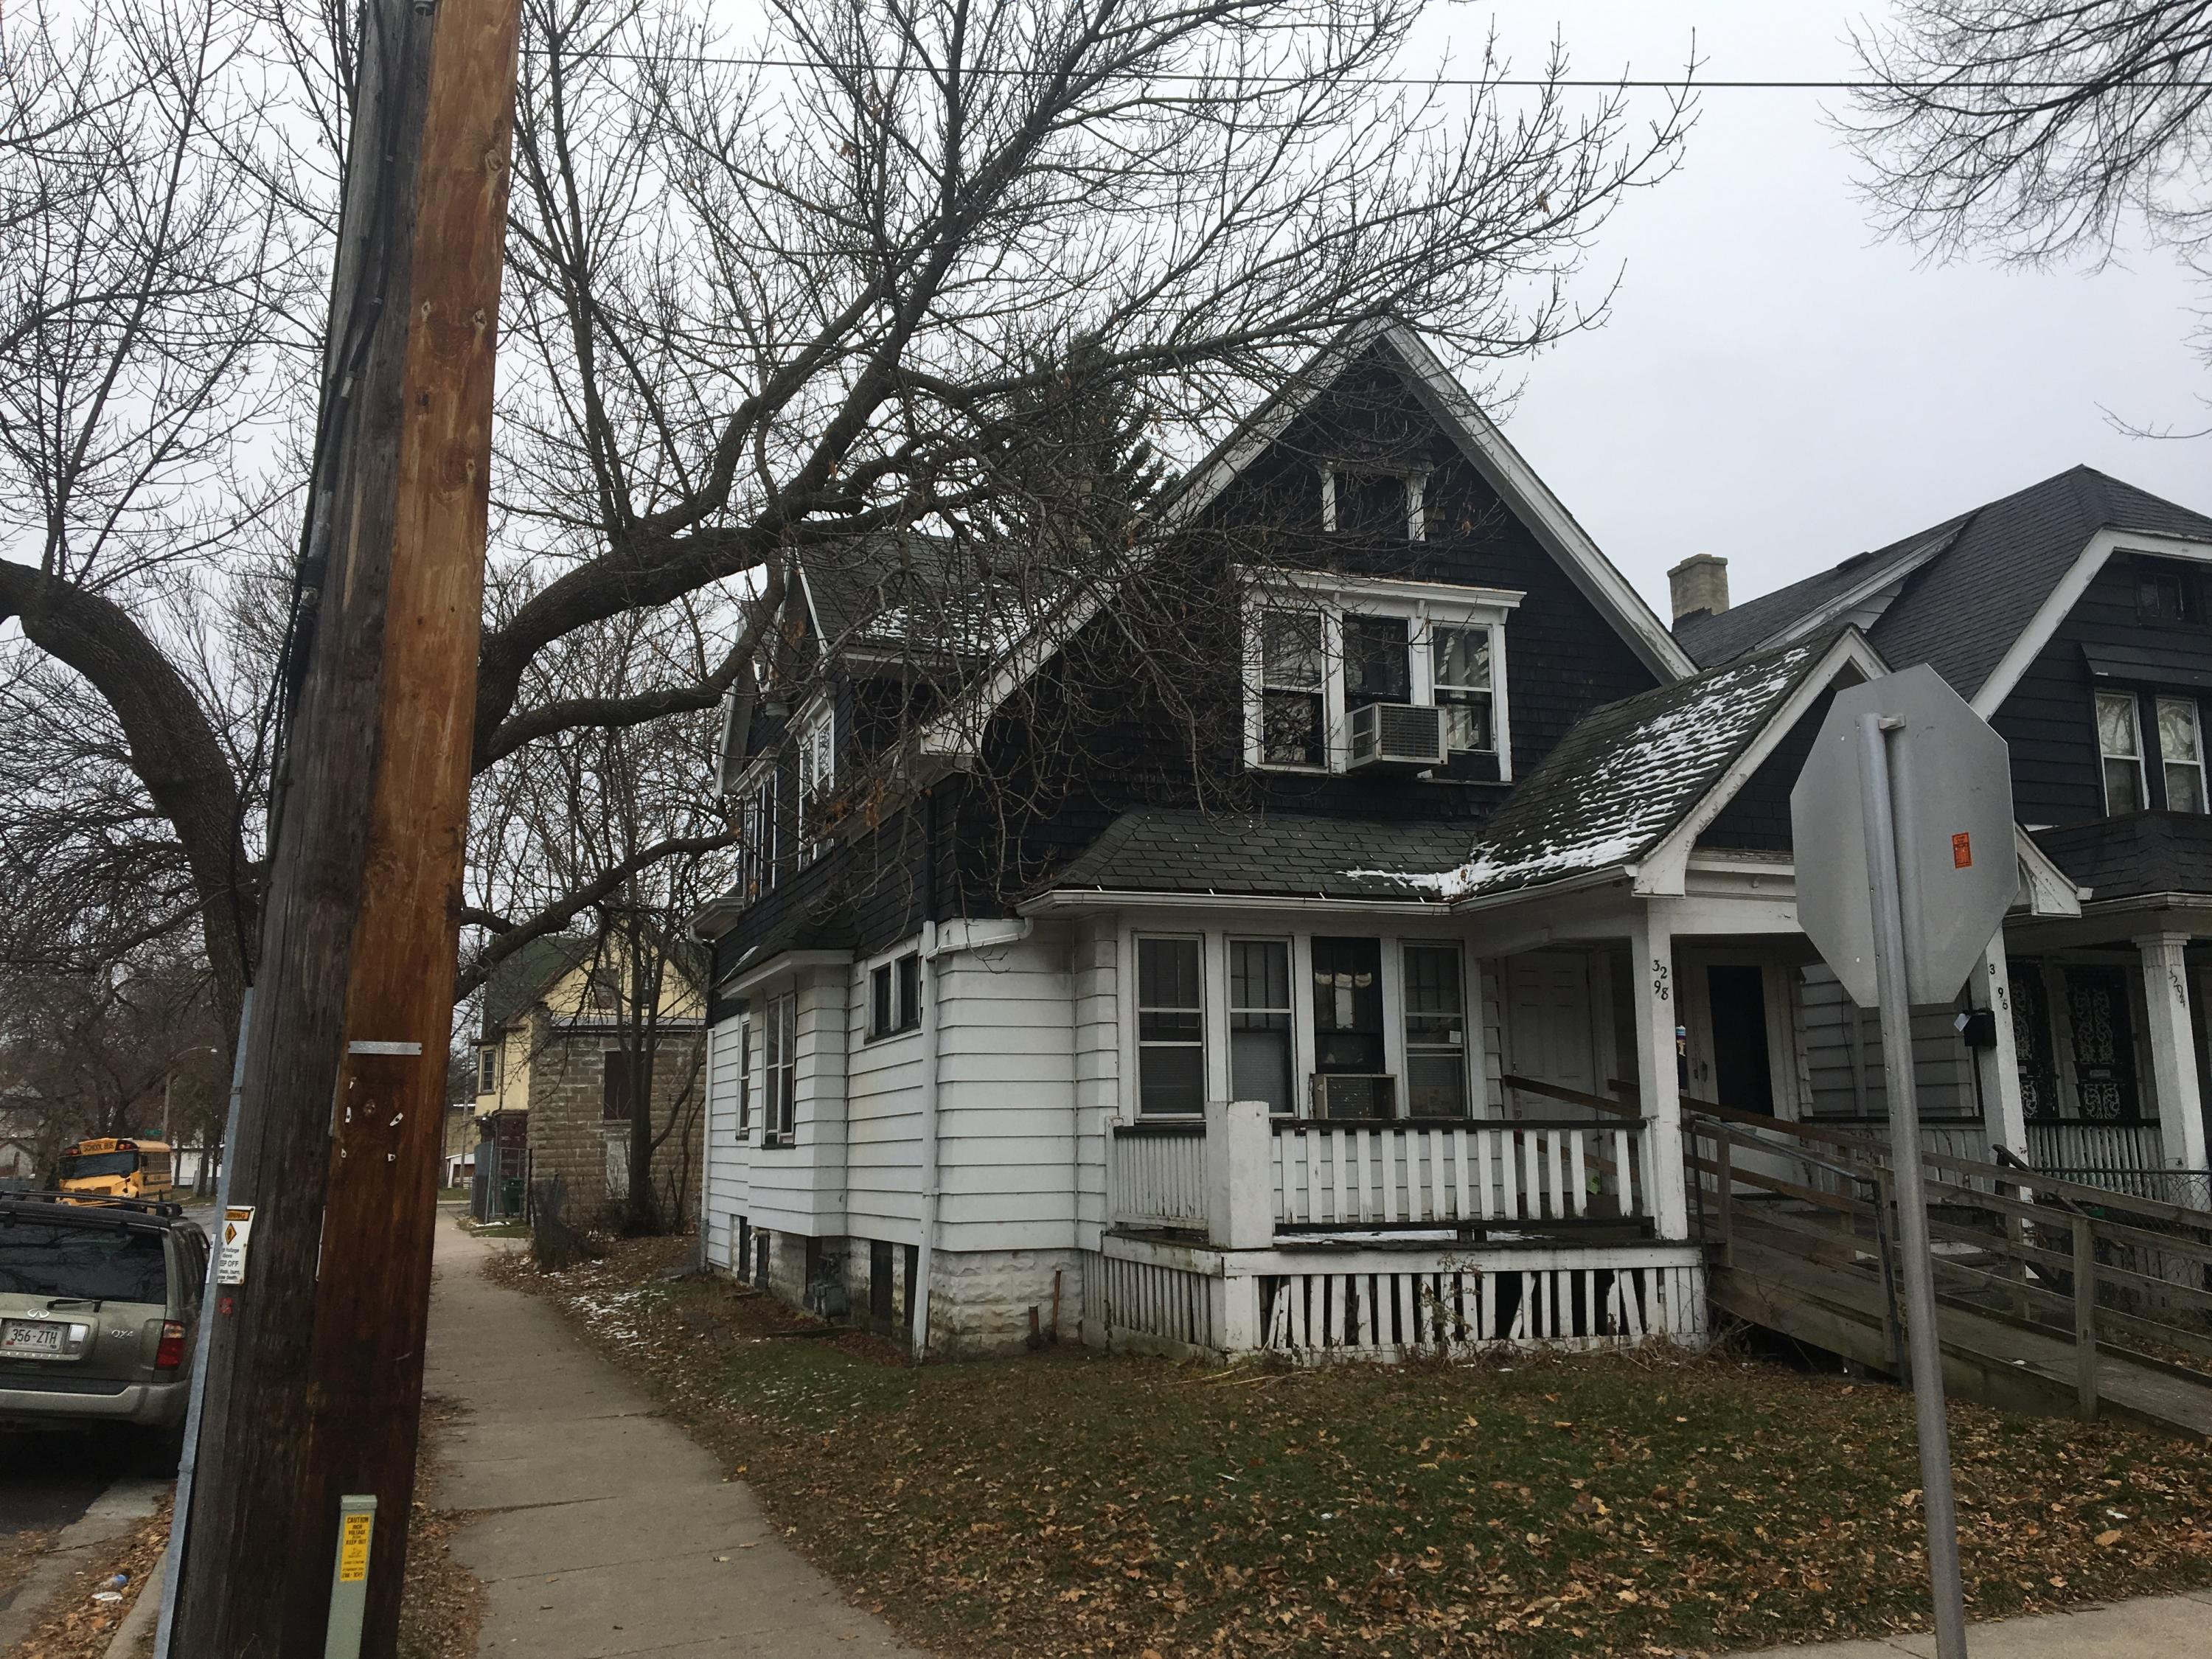 3296 13th St, Milwaukee, Wisconsin 53206, 2 Bedrooms Bedrooms, 5 Rooms Rooms,1 BathroomBathrooms,Two-Family,For Sale,13th St,1,1614629